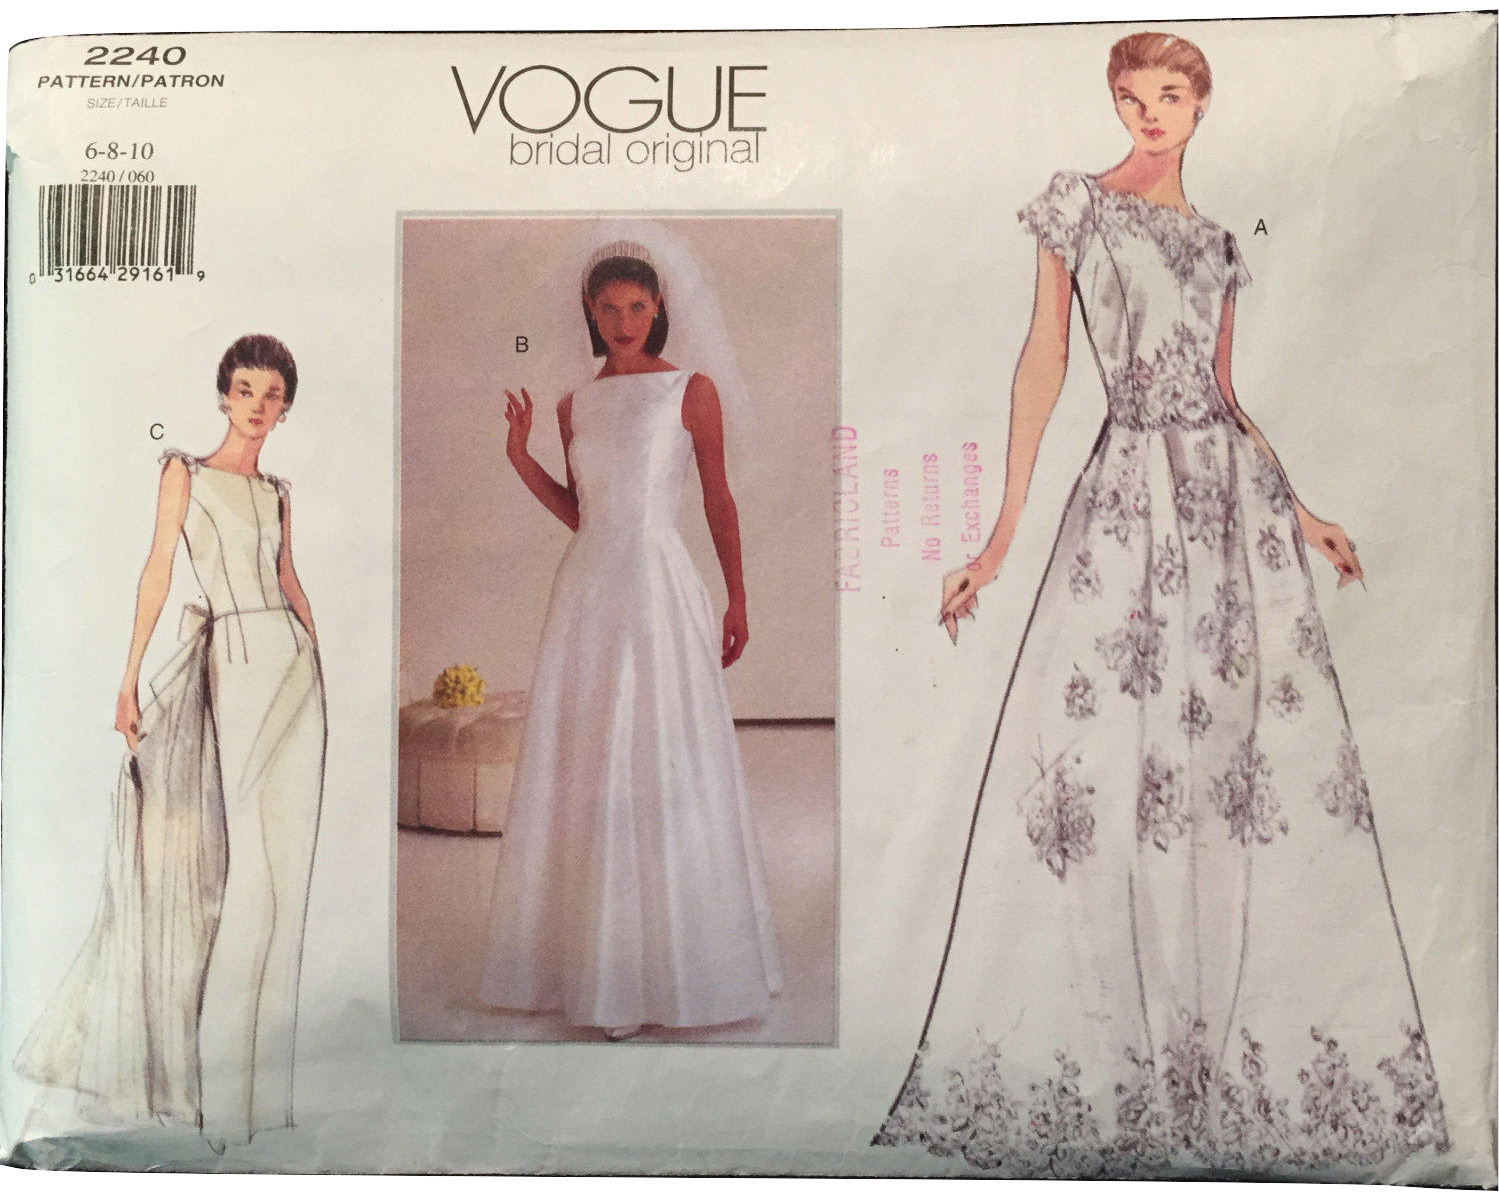 d051396355bf2 Vogue 2240 Close Fit Wedding Gown w Lace and 50 similar items